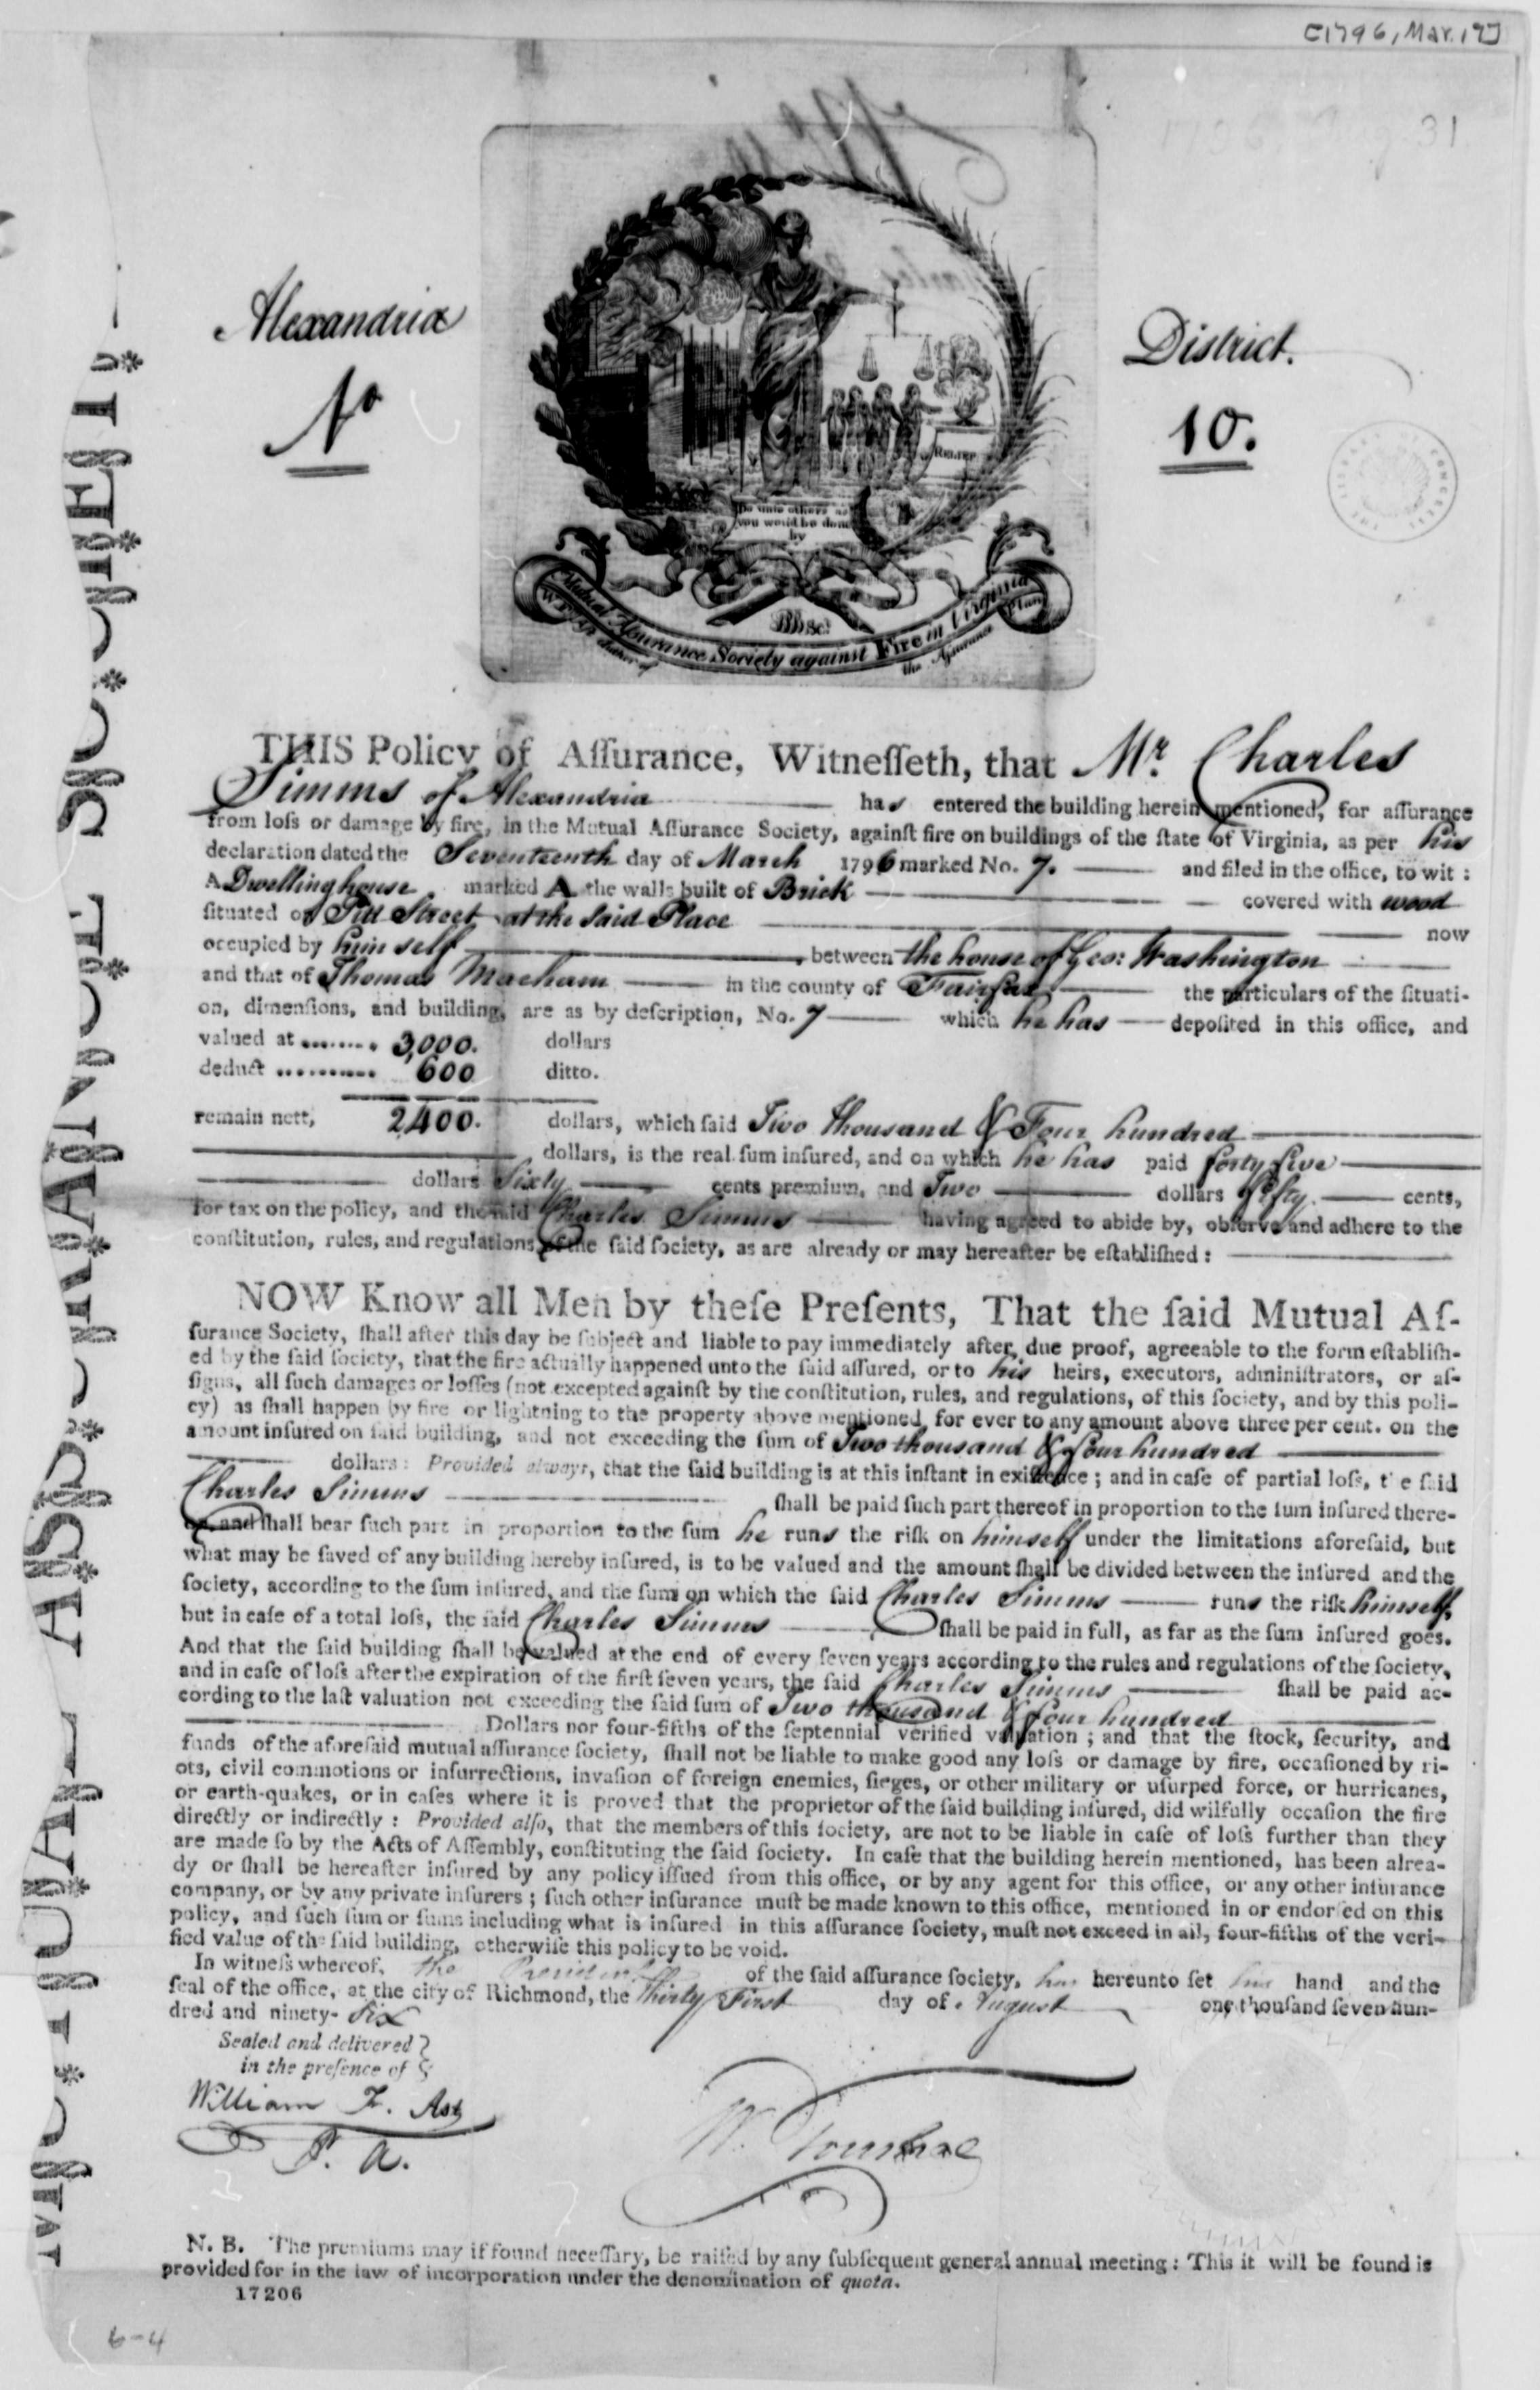 an old insurance contract